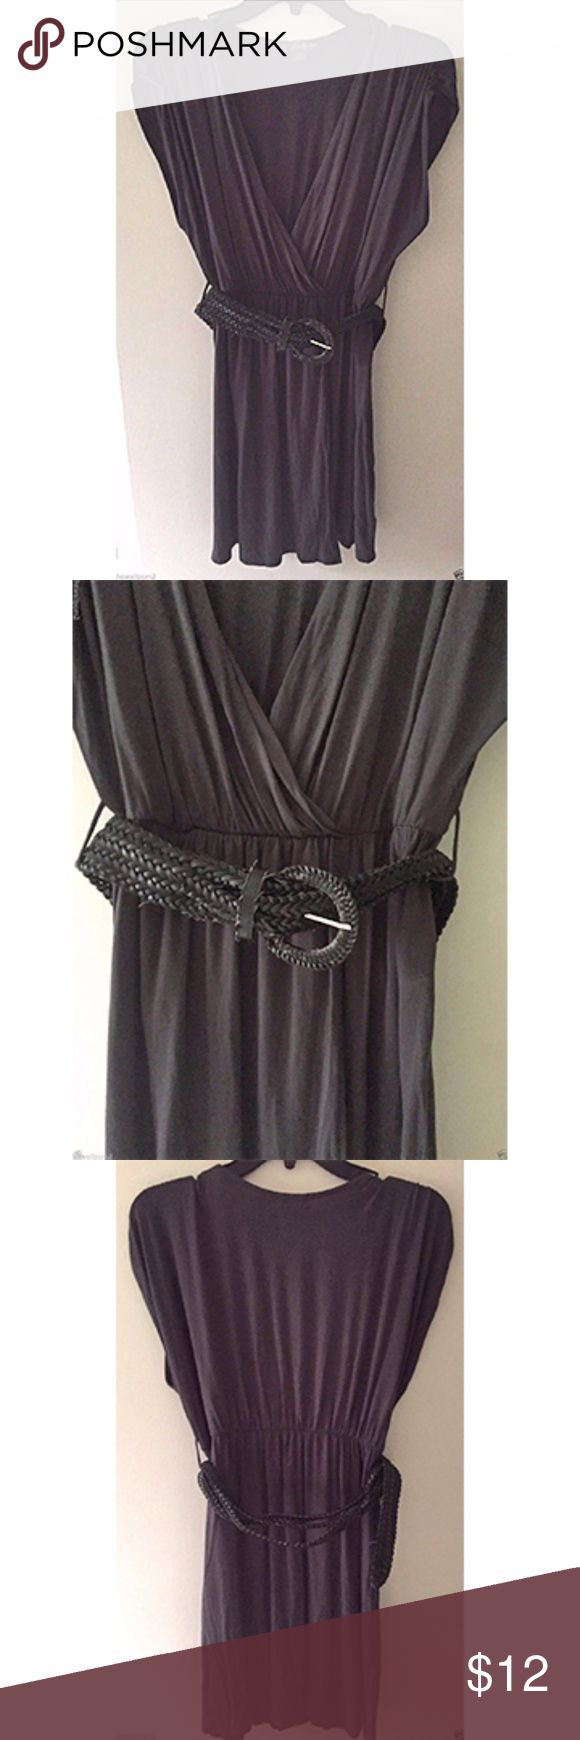 """F21 Forever 21 Gray Drape Dress W/Braid Belt Sz. S Really soft - rayon/spandex. Removable belt. Cleaned / like new condition. Only worn once for a photoshoot. Enjoy!  Length: 31""""    Underarm to underarm (front): 20"""" Forever 21 Dresses Mini"""